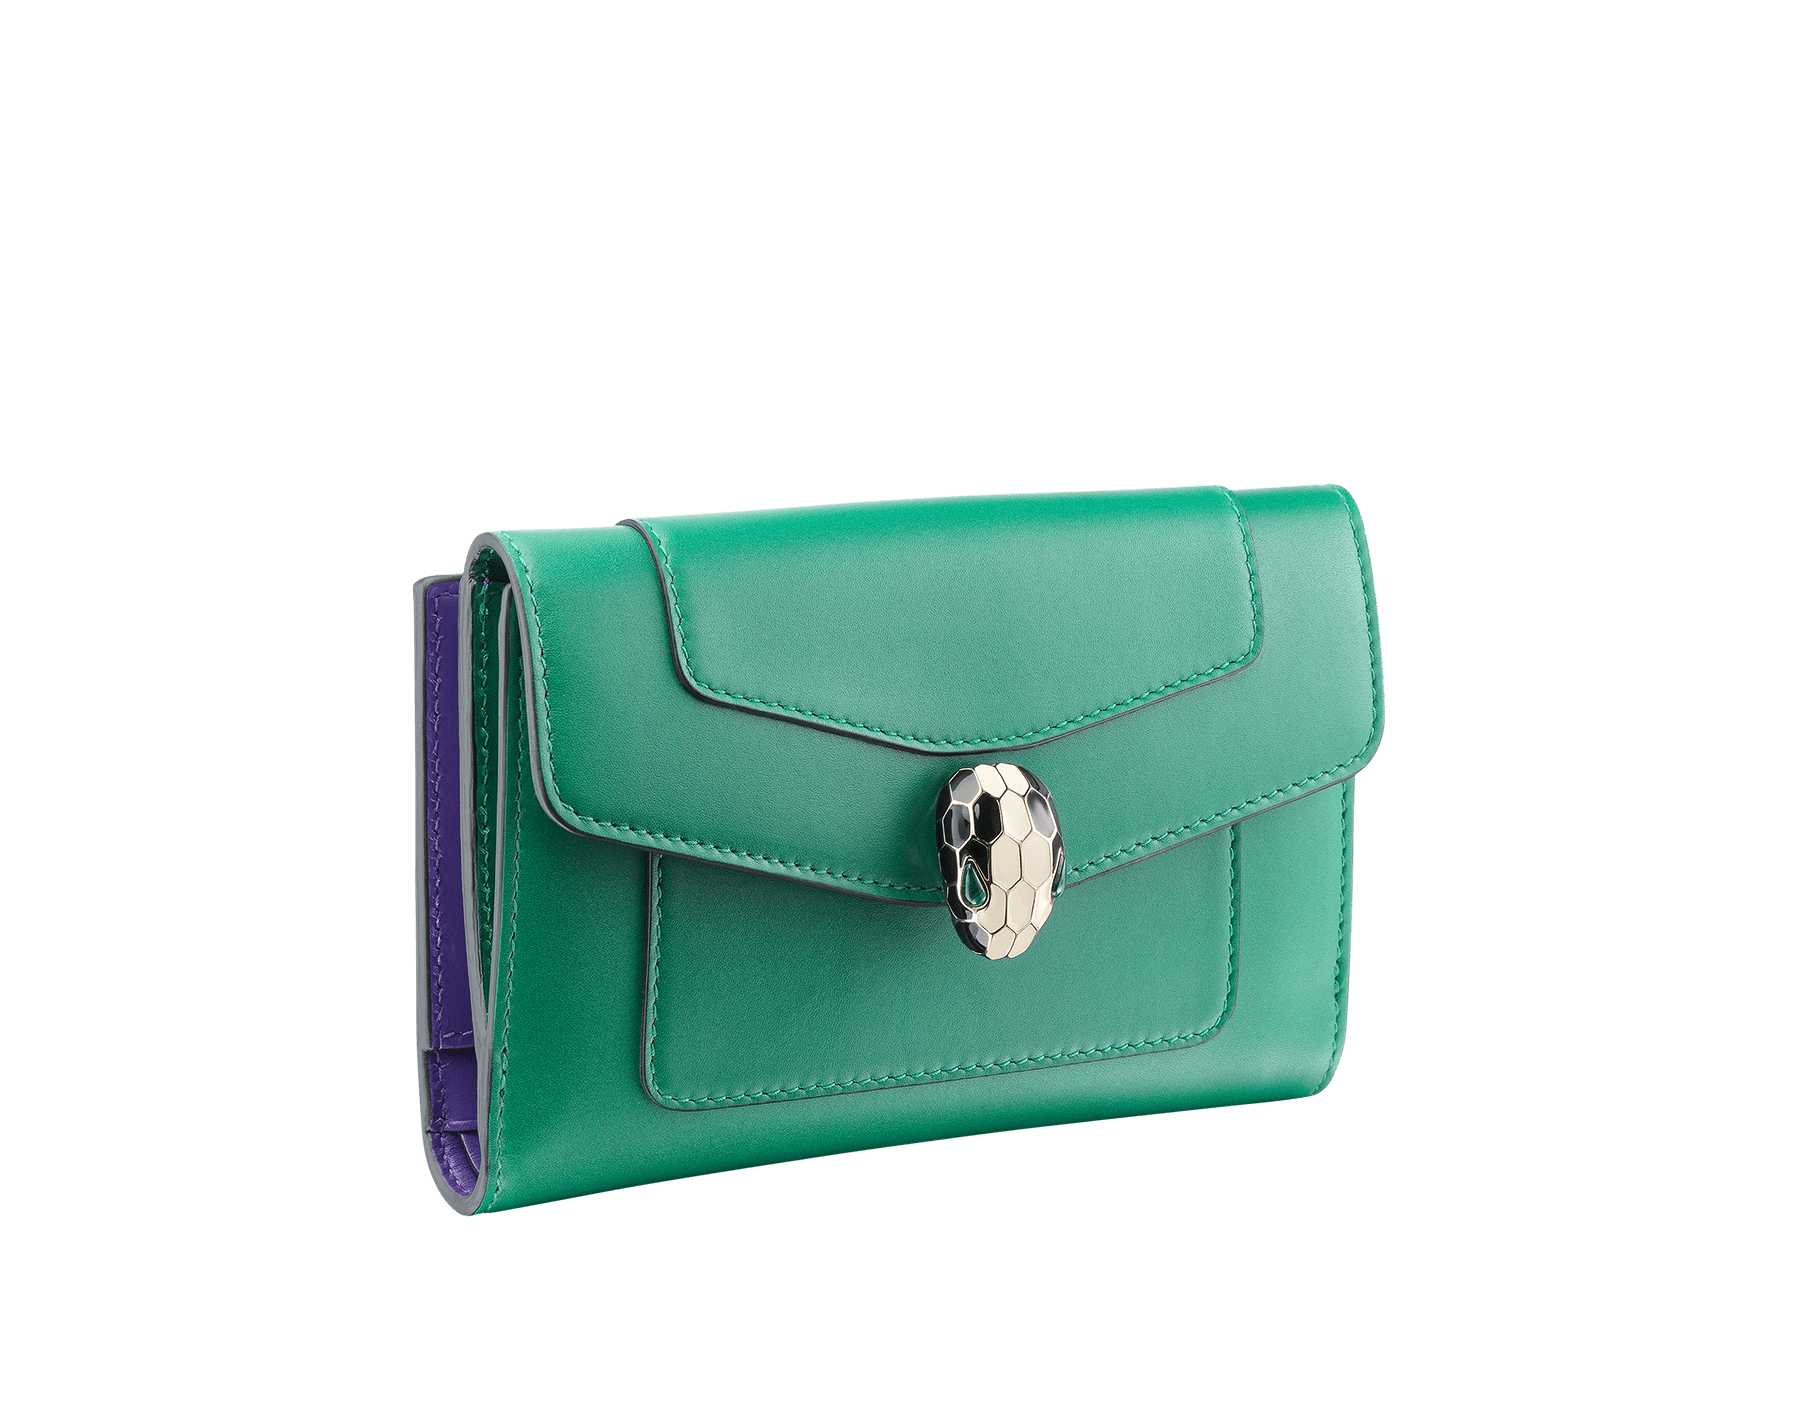 Compact pochette in emerald green calf leather, violet amethyst calf leather and amethyst purple nappa lining. Brass light gold plated Serpenti head stud closure with green malachite eyes. 282665 image 1